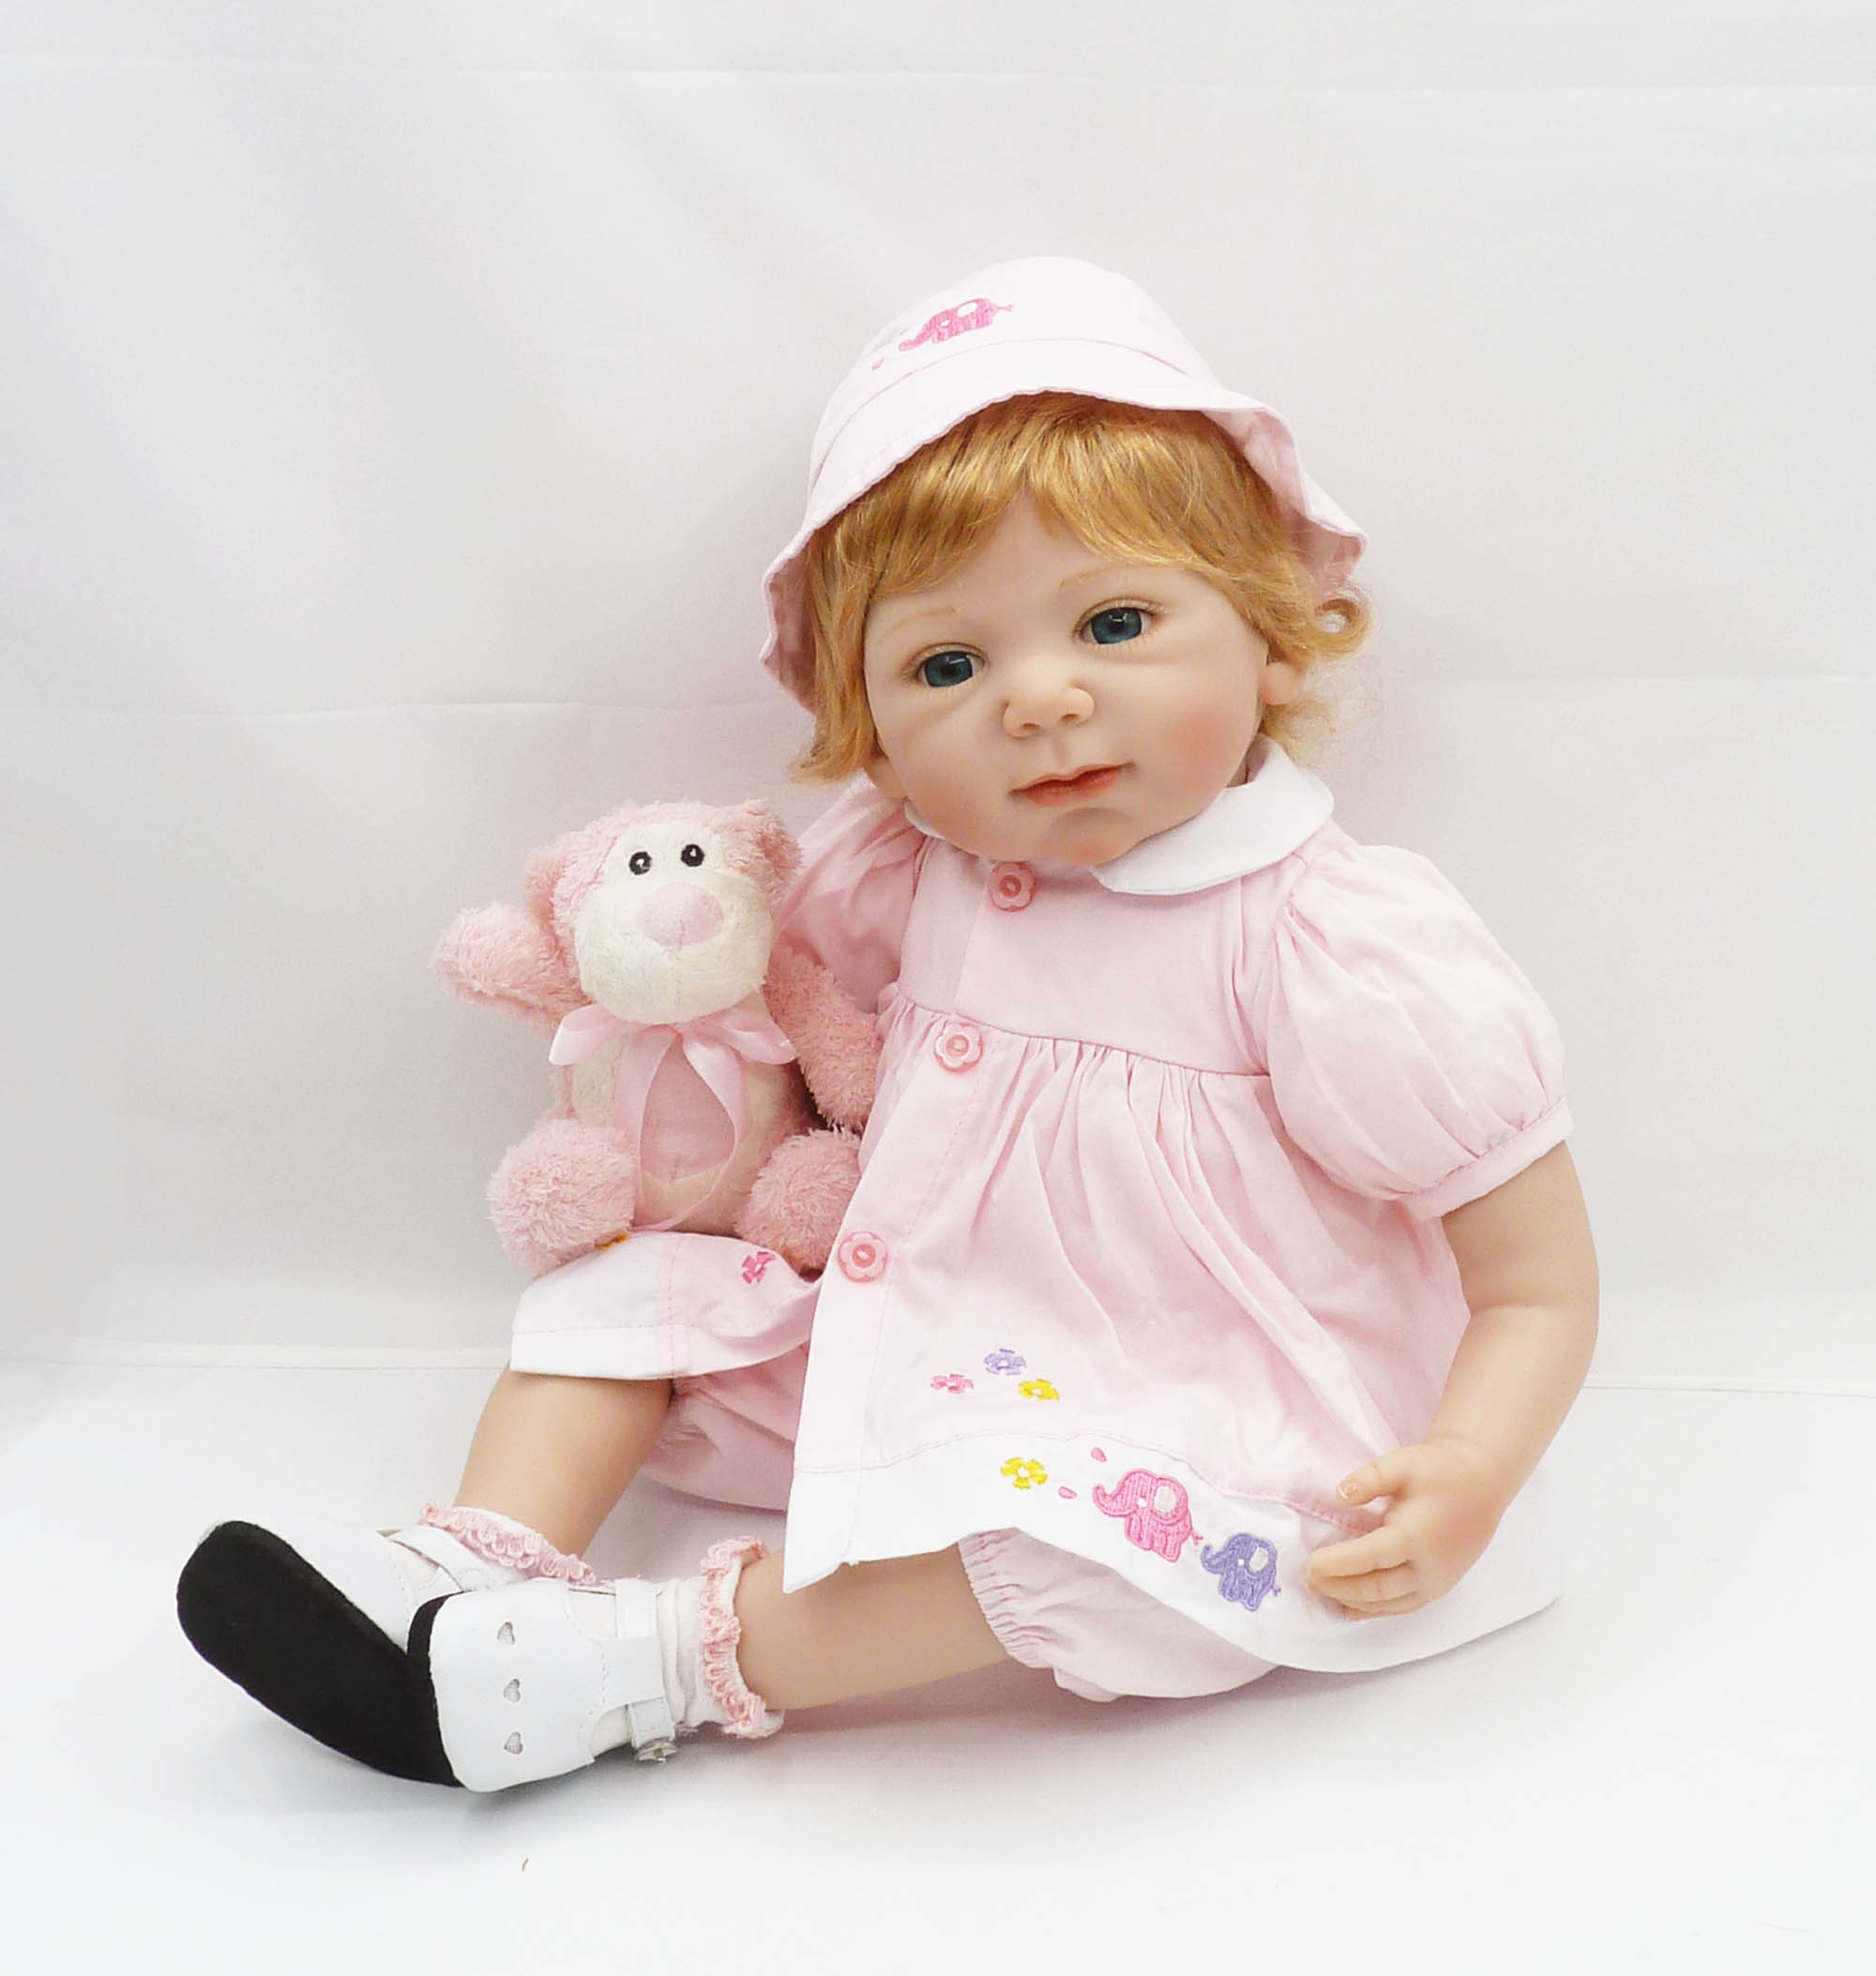 20inch Cotton Body Silicone Bebe Reborn Doll Sleeping Girl with Cute Clothes Baby Kids Toys Girls Playmate Christmas Gifts20inch Cotton Body Silicone Bebe Reborn Doll Sleeping Girl with Cute Clothes Baby Kids Toys Girls Playmate Christmas Gifts